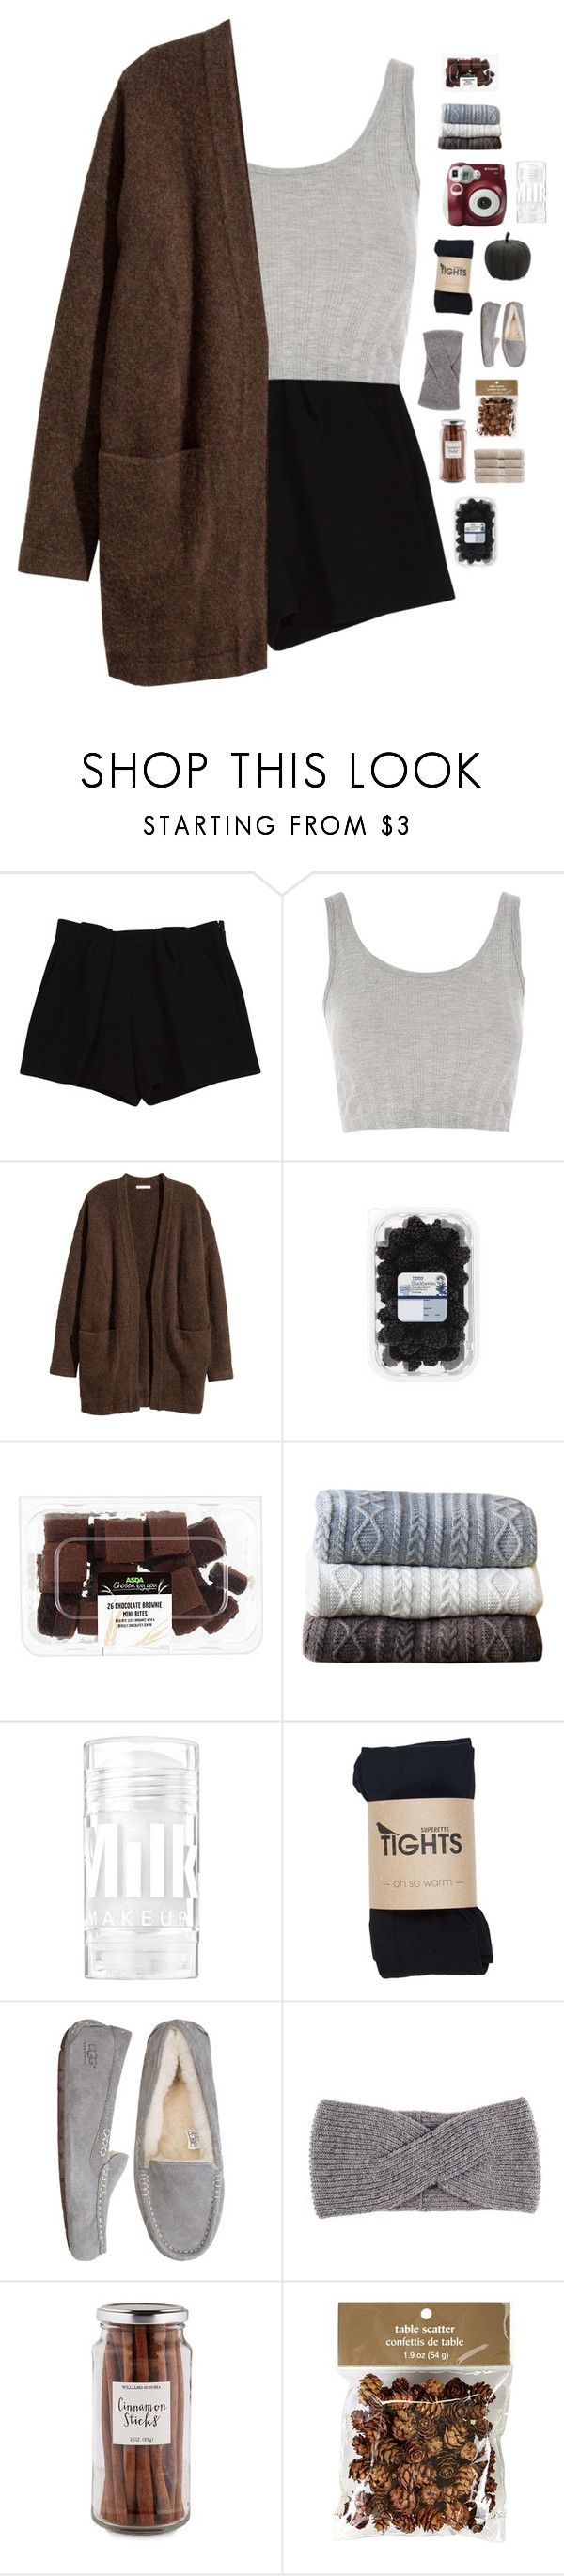 """""""you'll never be alone"""" by midnight-shimmer ❤ liked on Polyvore featuring Chloé, Topshop, Kofta, Johanna Howard, Polaroid, UGG Australia, Black, Williams-Sonoma, Pier 1 Imports and Christy"""